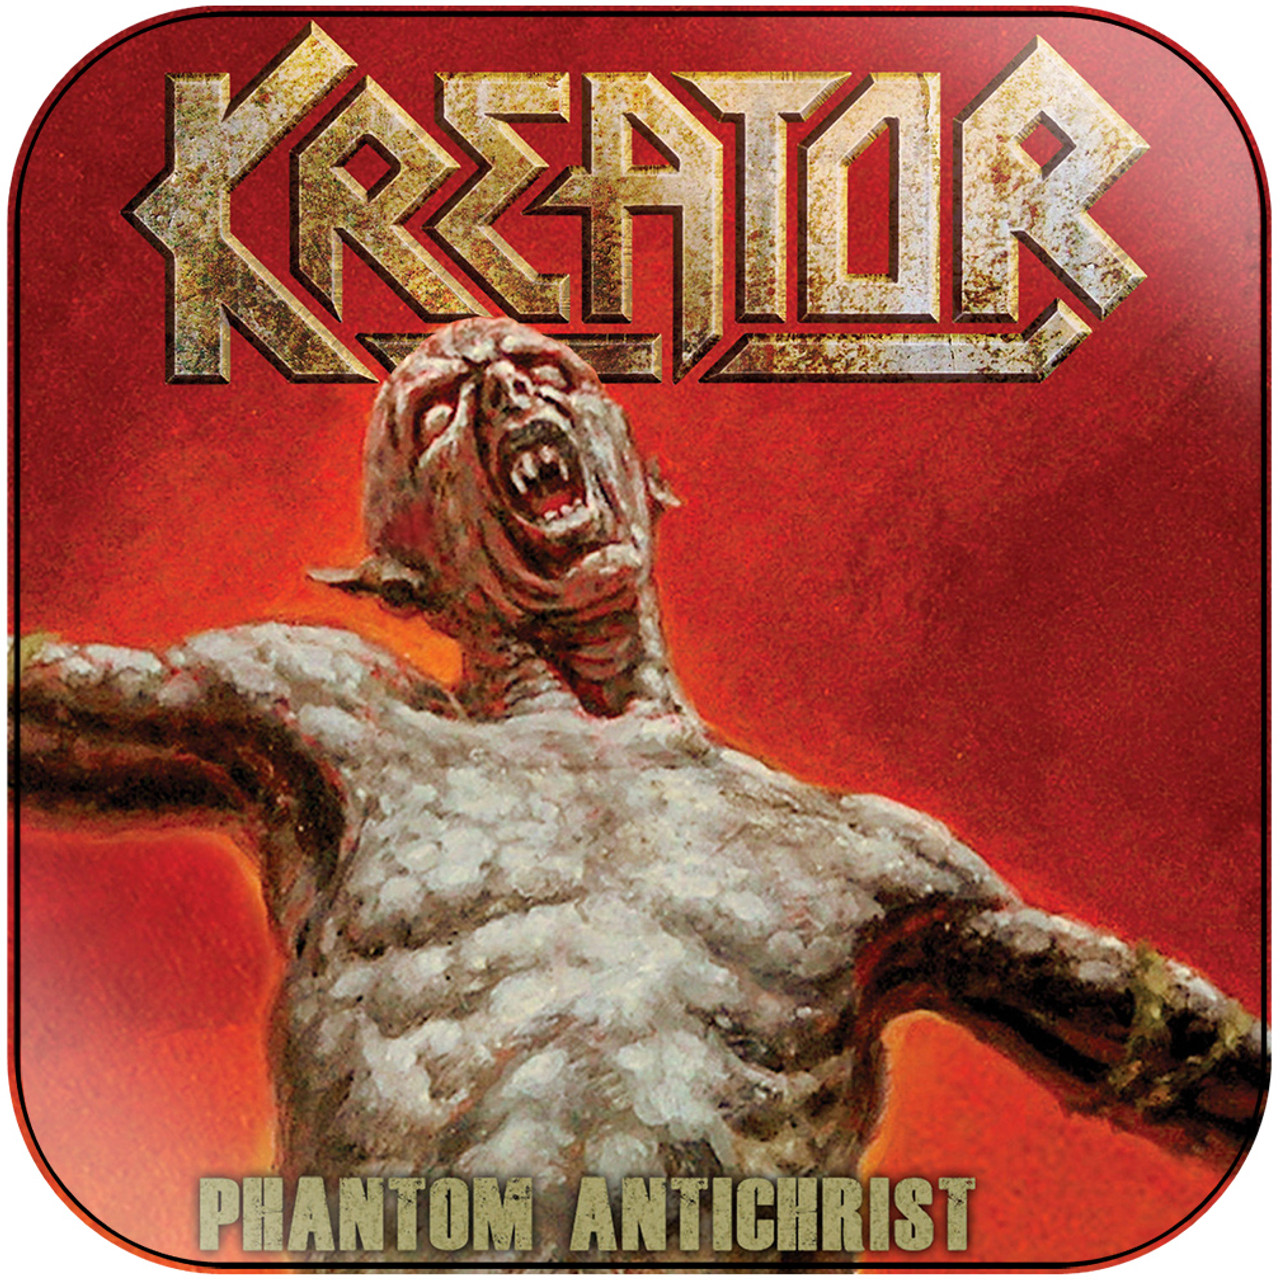 Kreator - Phantom Antichrist-2 Album Cover Sticker